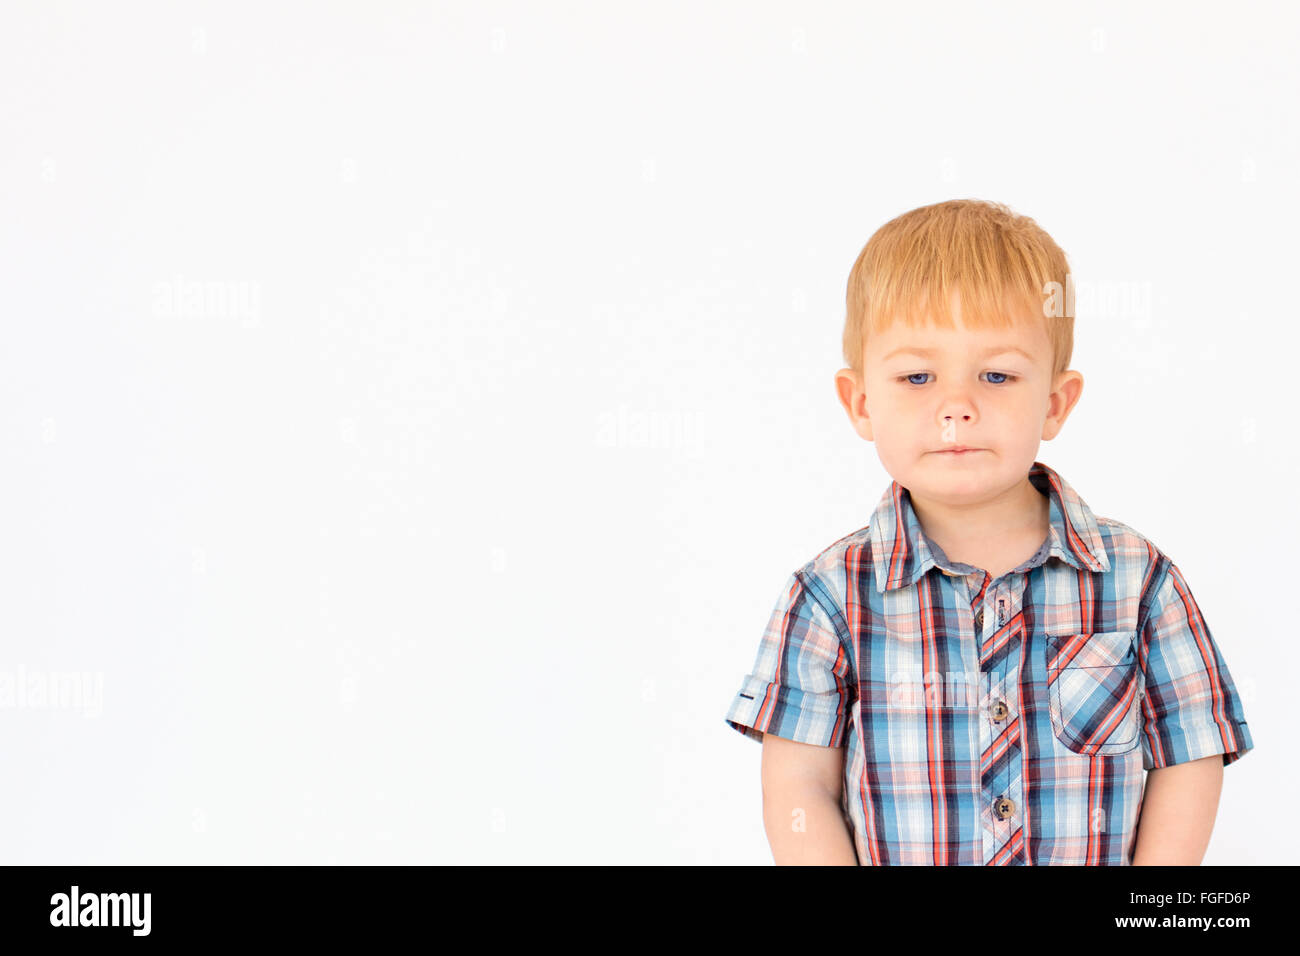 Portrait of a young boy standing against a white background - Stock Image